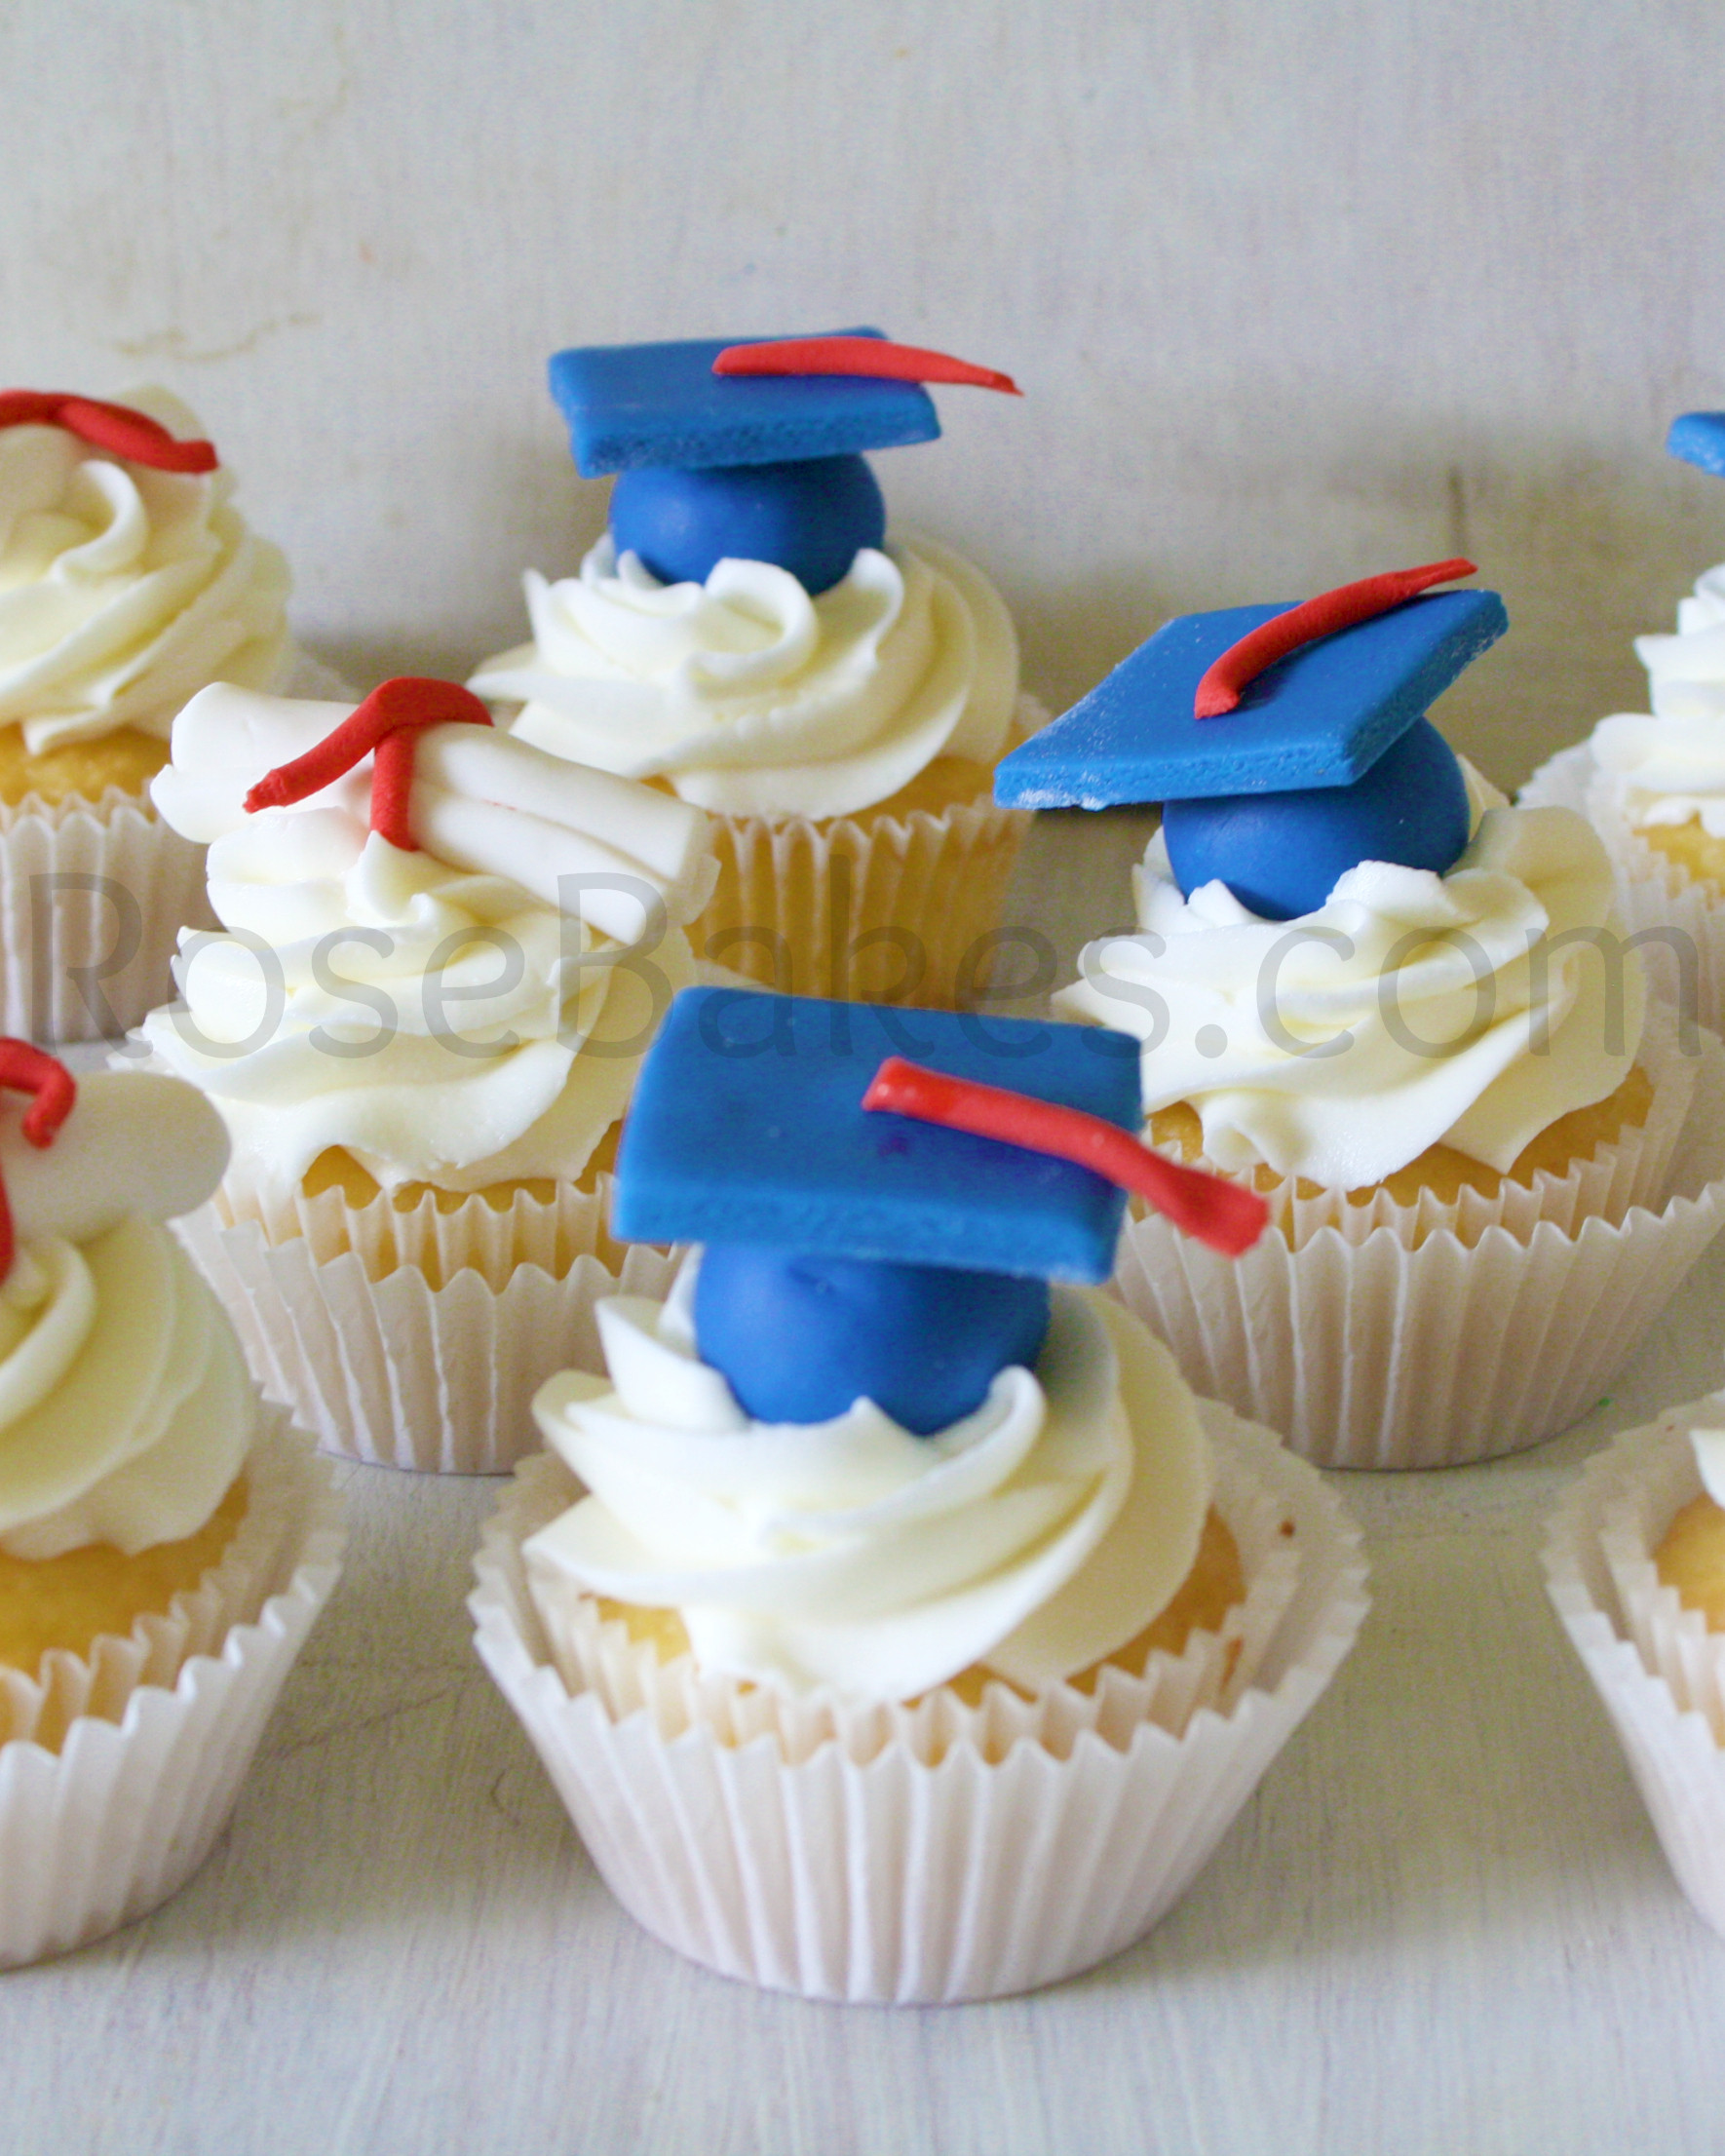 Graduation Cupcakes Decorating Ideas  How to Make Graduation Cap Cupcake Toppers Tutorial Rose